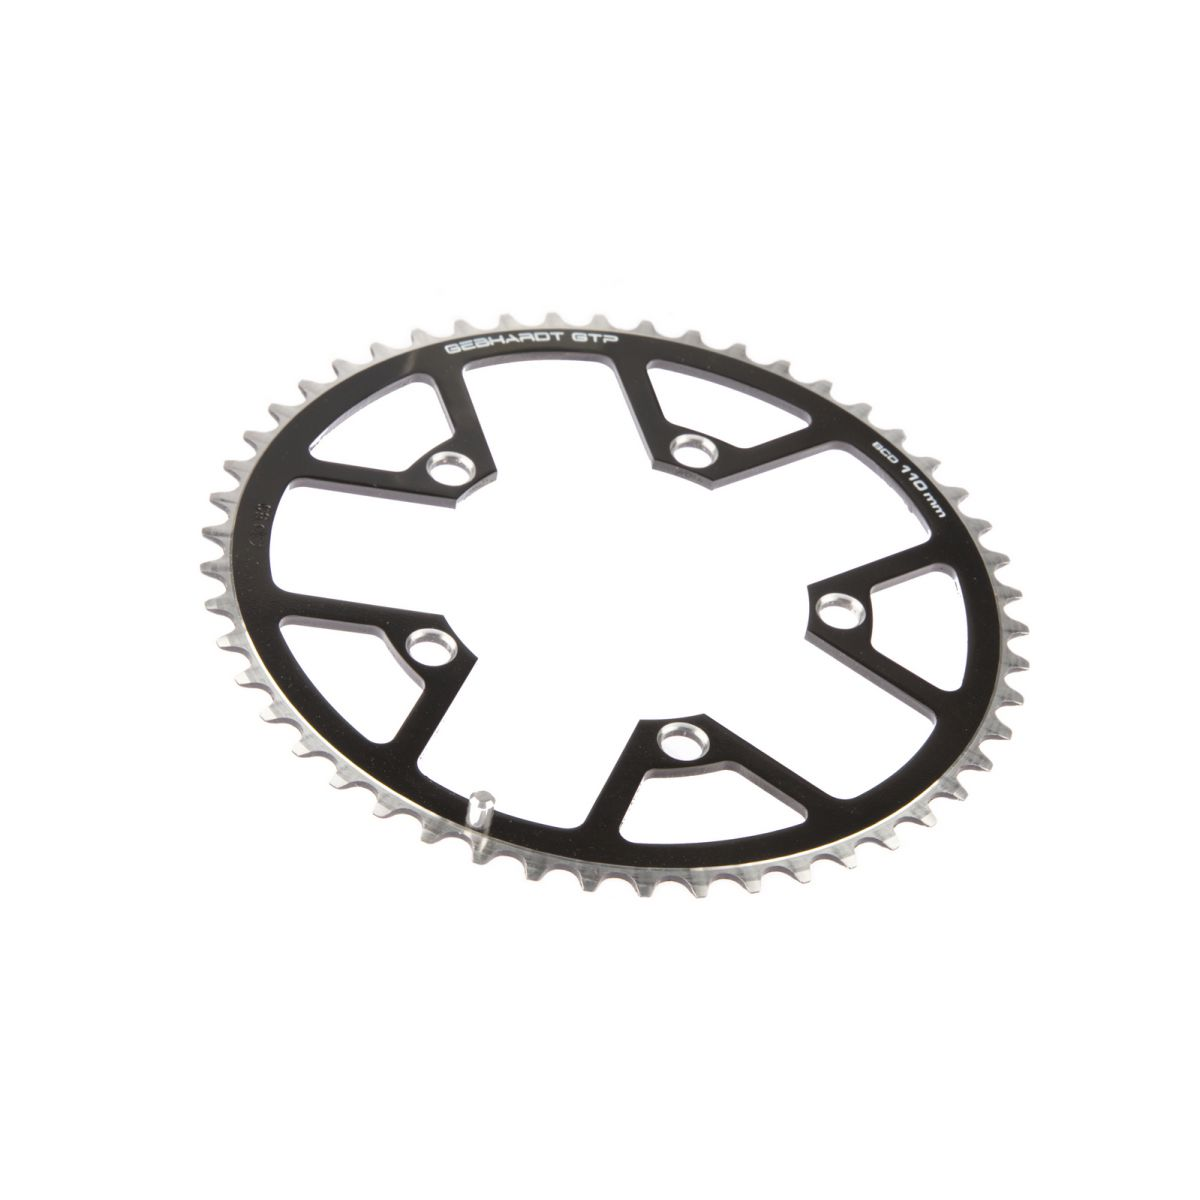 gebhardt chainring classic bcd 110 mm 5hole 41t black